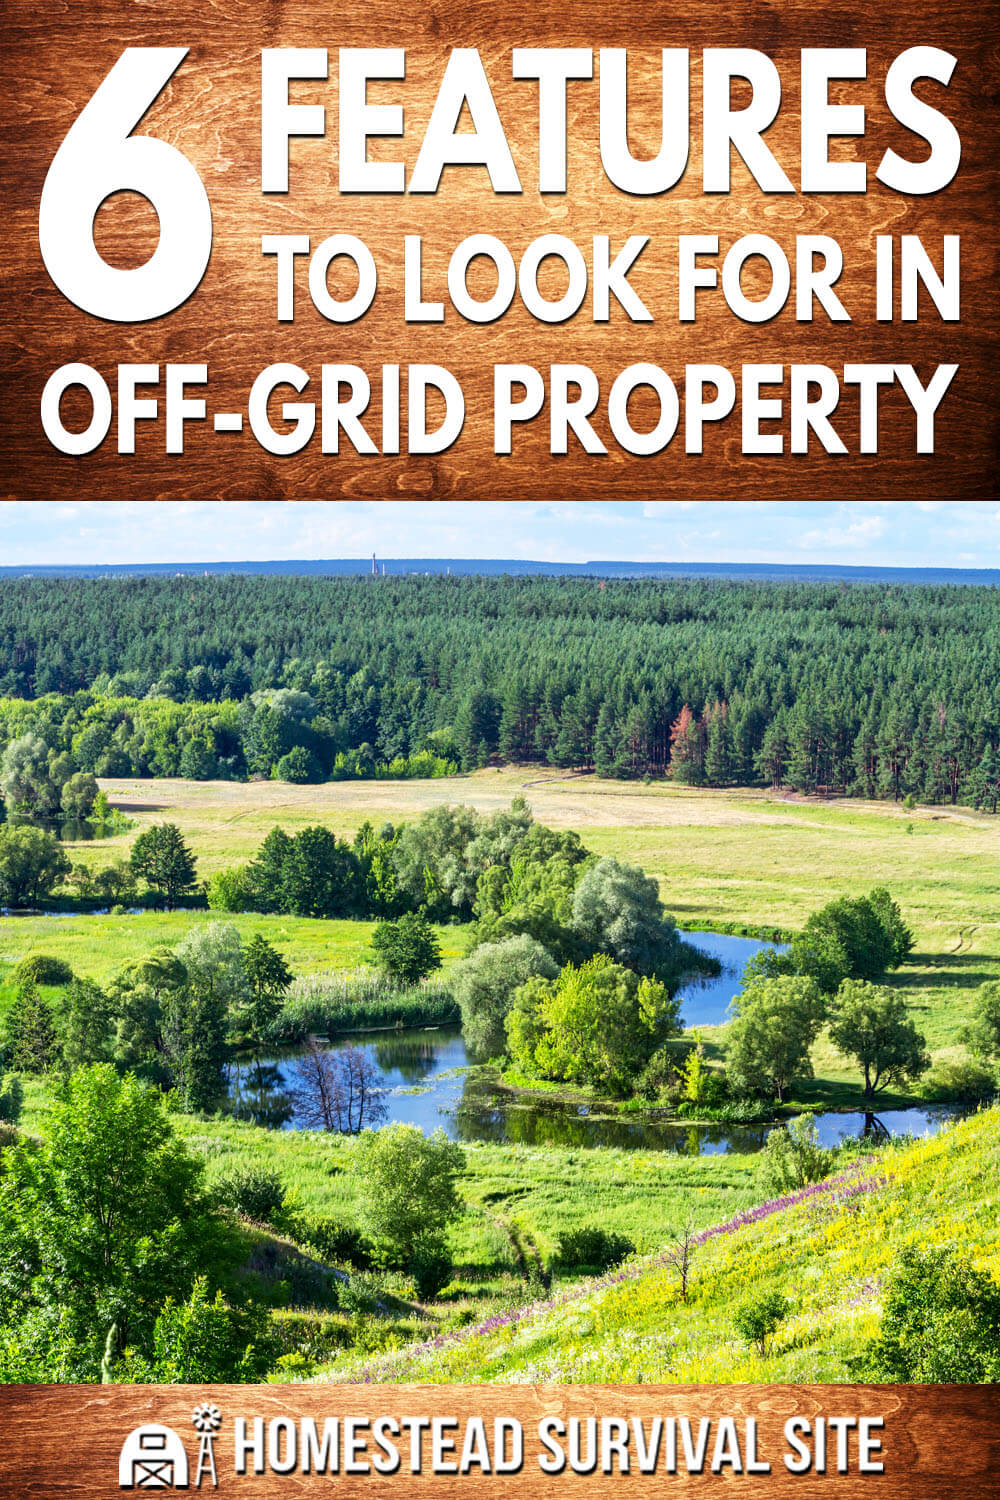 6 Features To Look For In Off-Grid Property